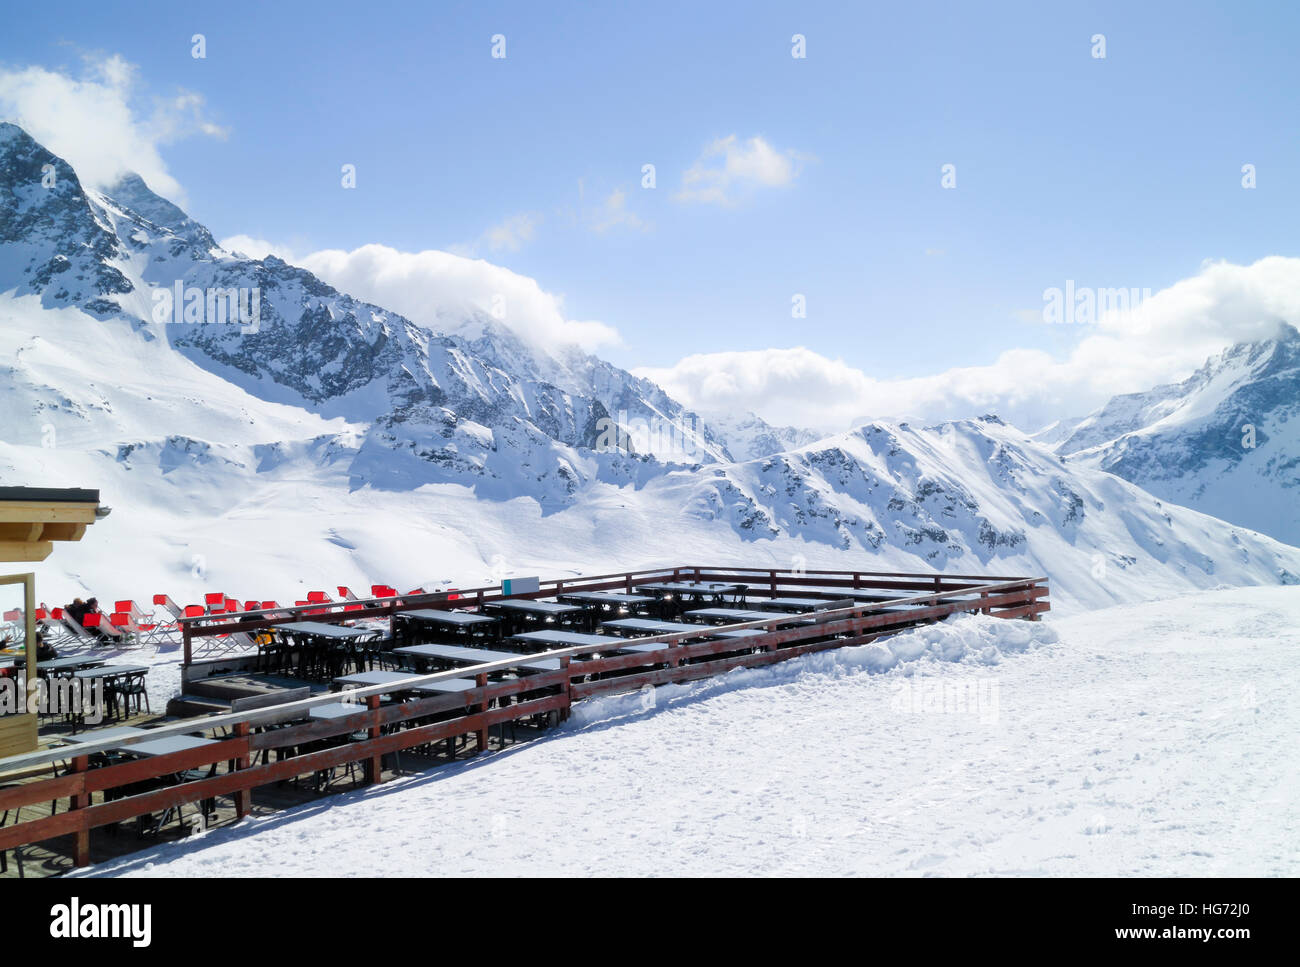 Apres ski chalet restaurant with chairs and tables outside, facing snowy mountain peaks and slopes, Les Arcs, Alps, - Stock Image